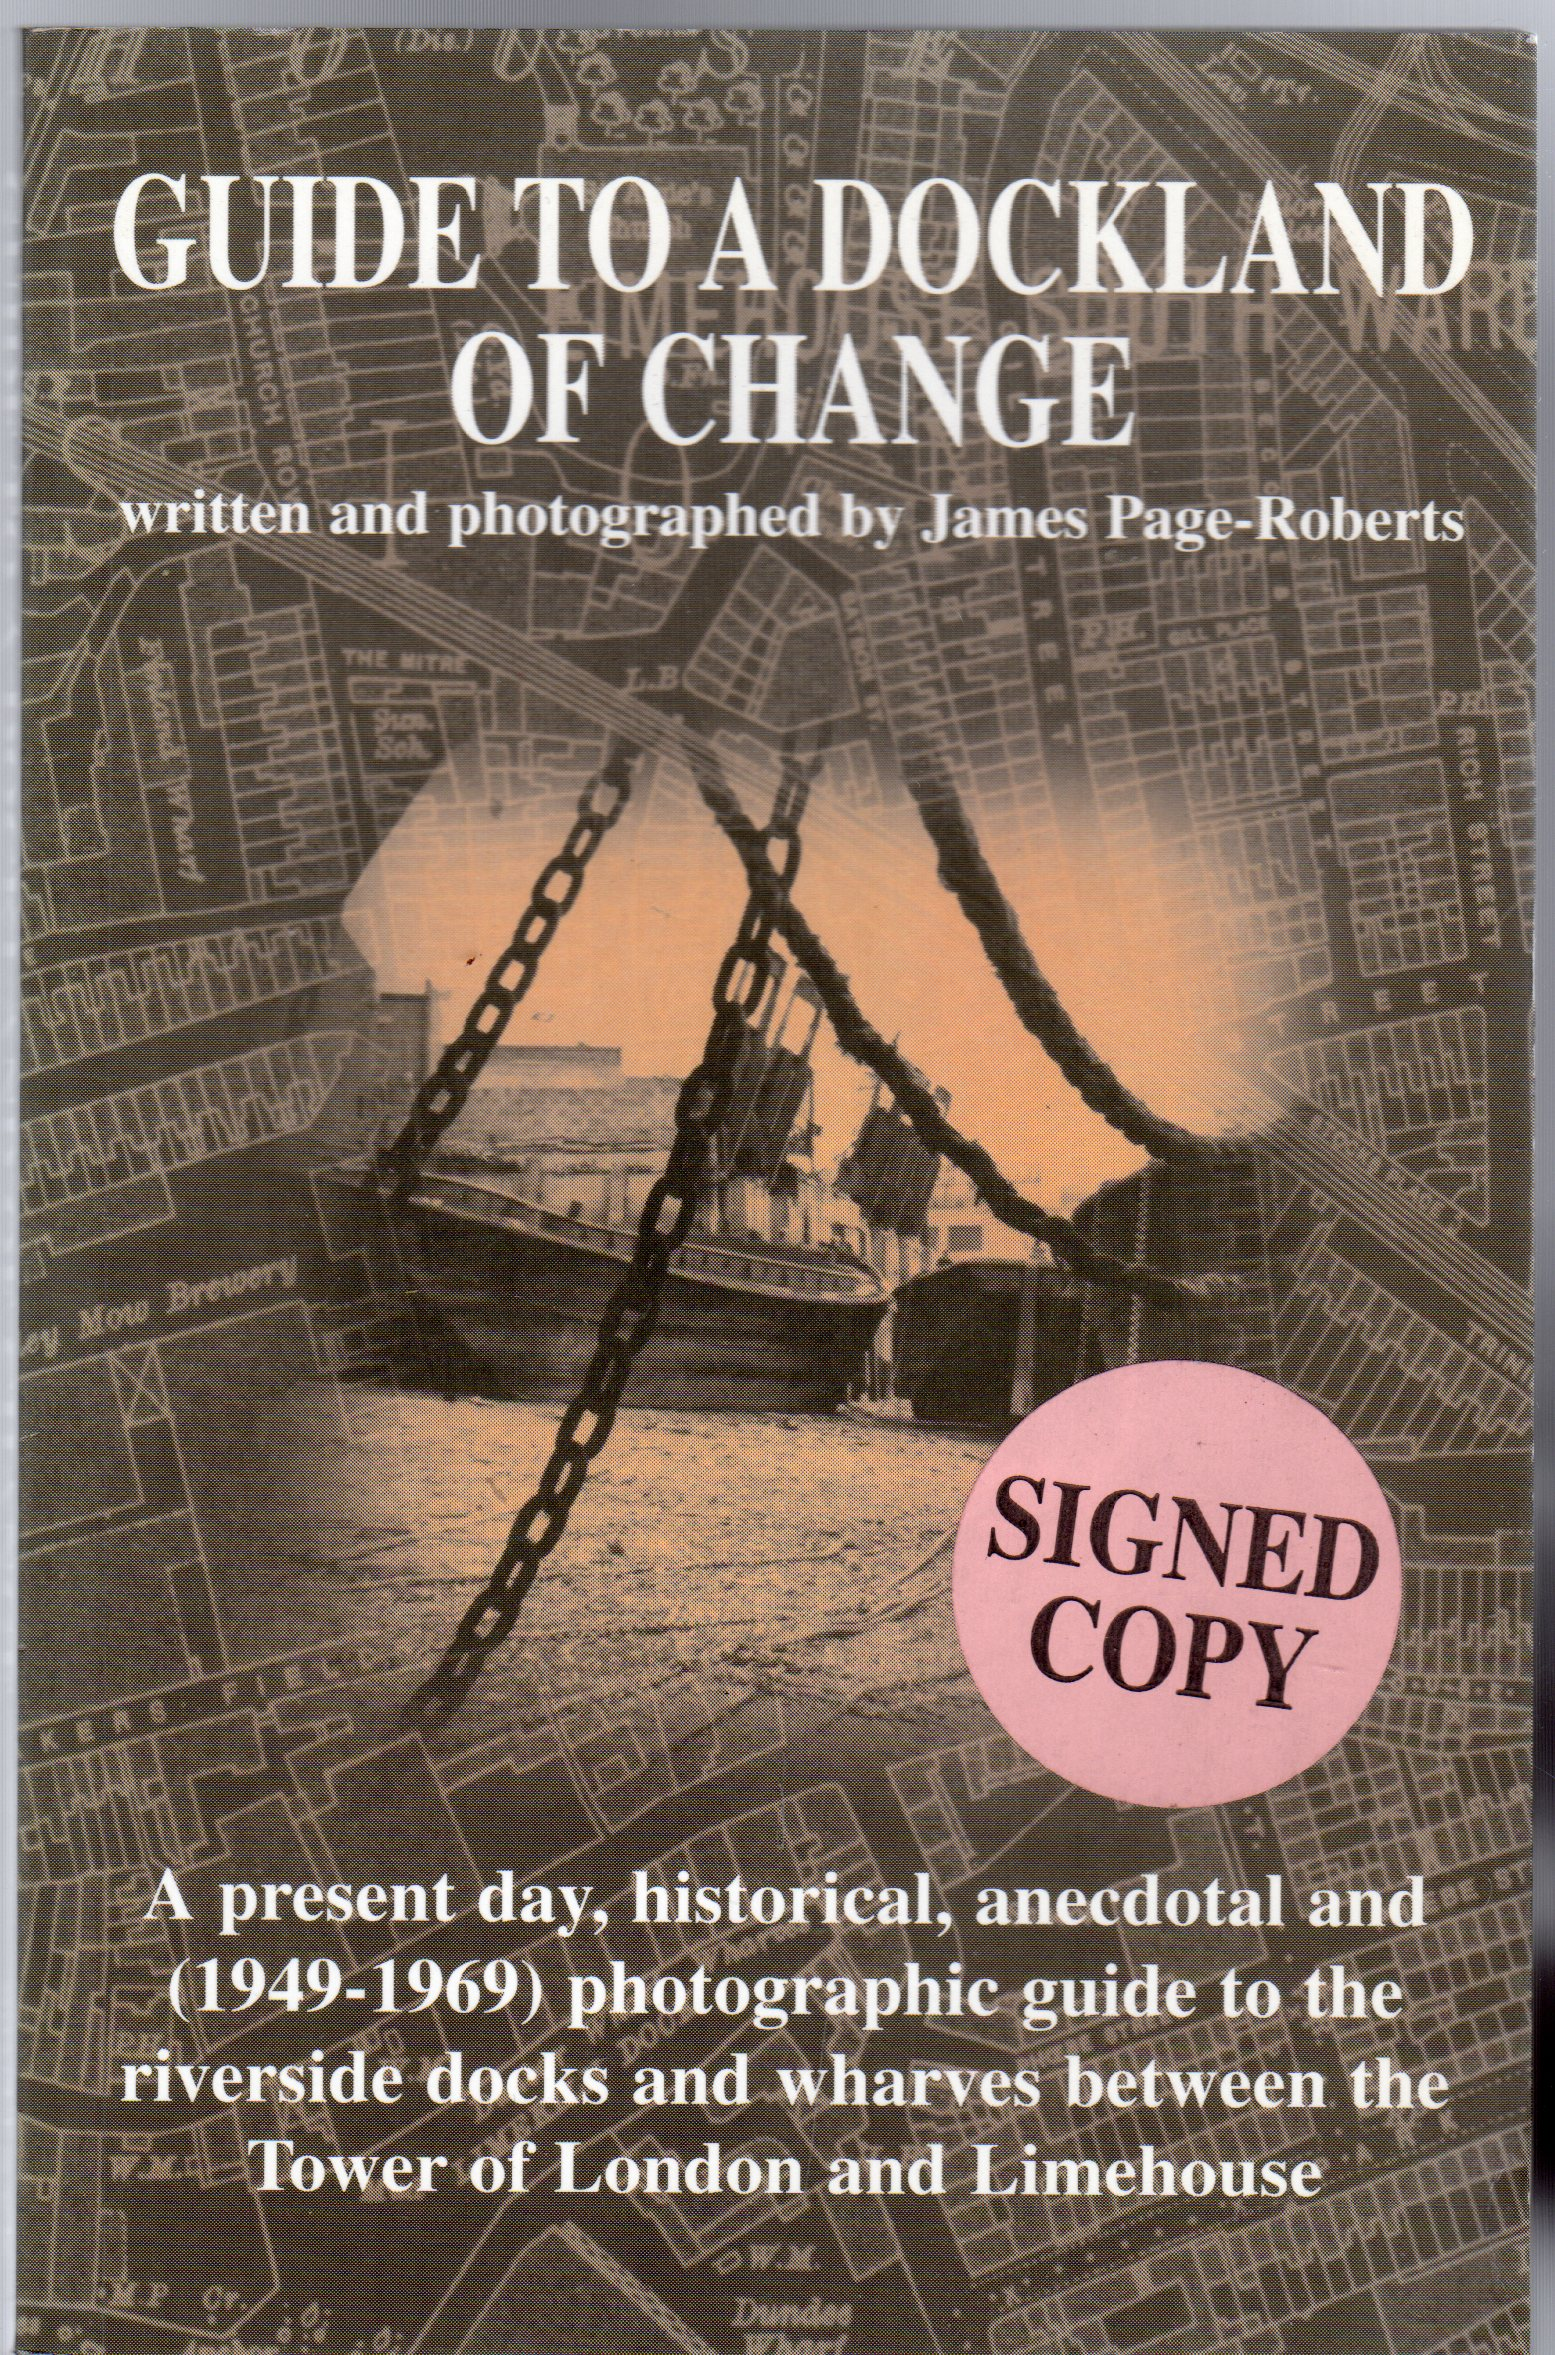 Image for Guide to a Dockland of Change (SIGNED COPY)